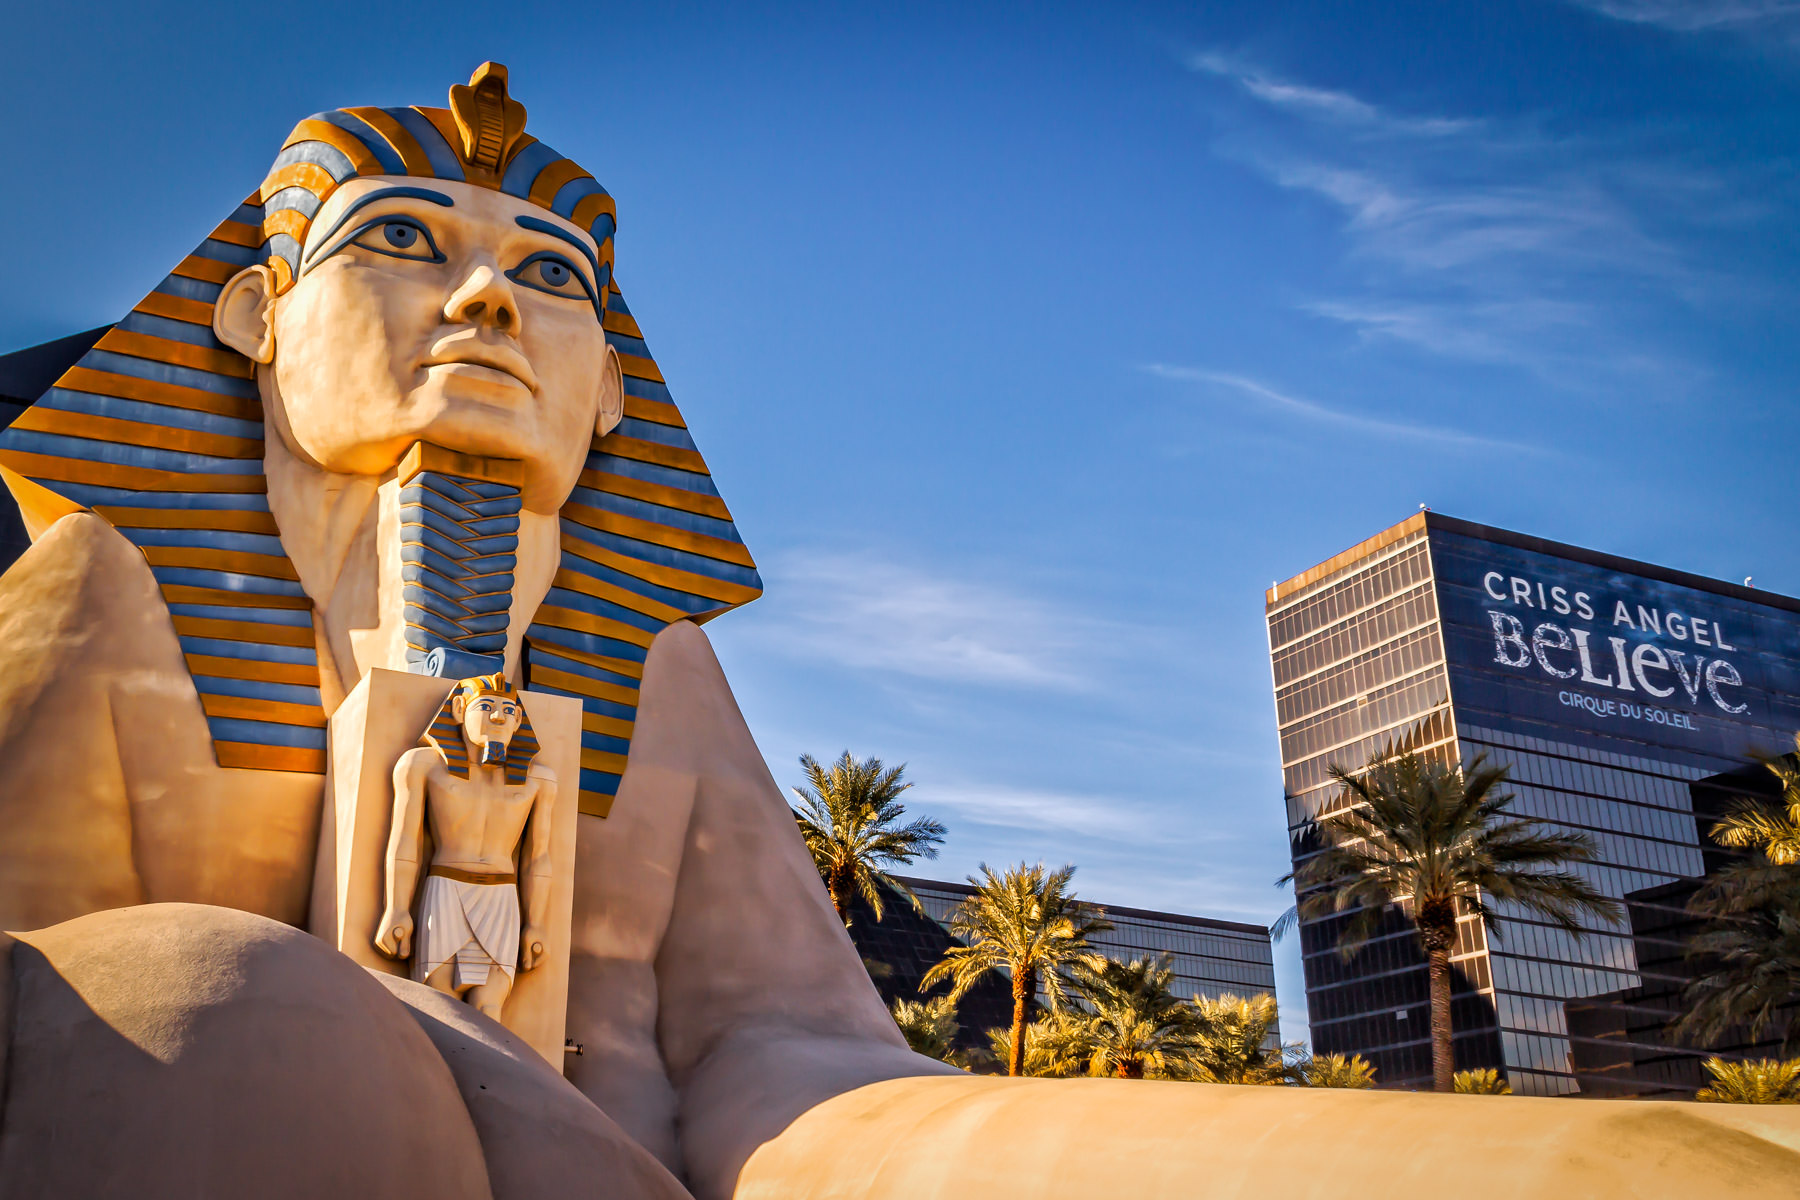 The sphinx at The Luxor, Las Vegas.